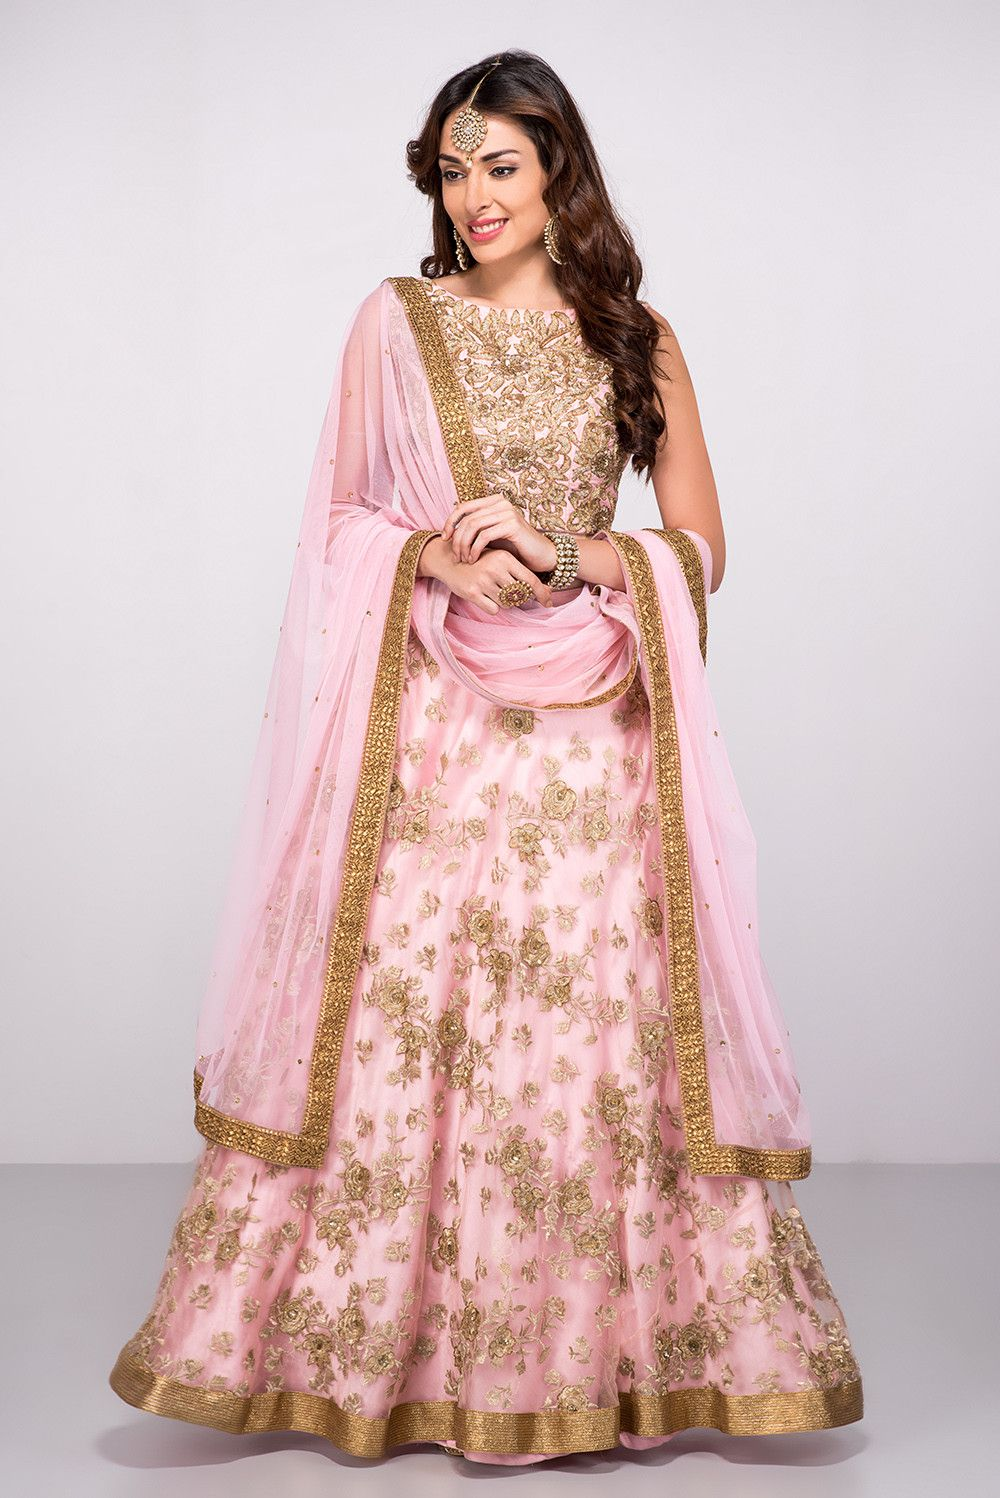 ABHILASHA Pink Embroidered Lehenga Set | Traditional | Pinterest ...